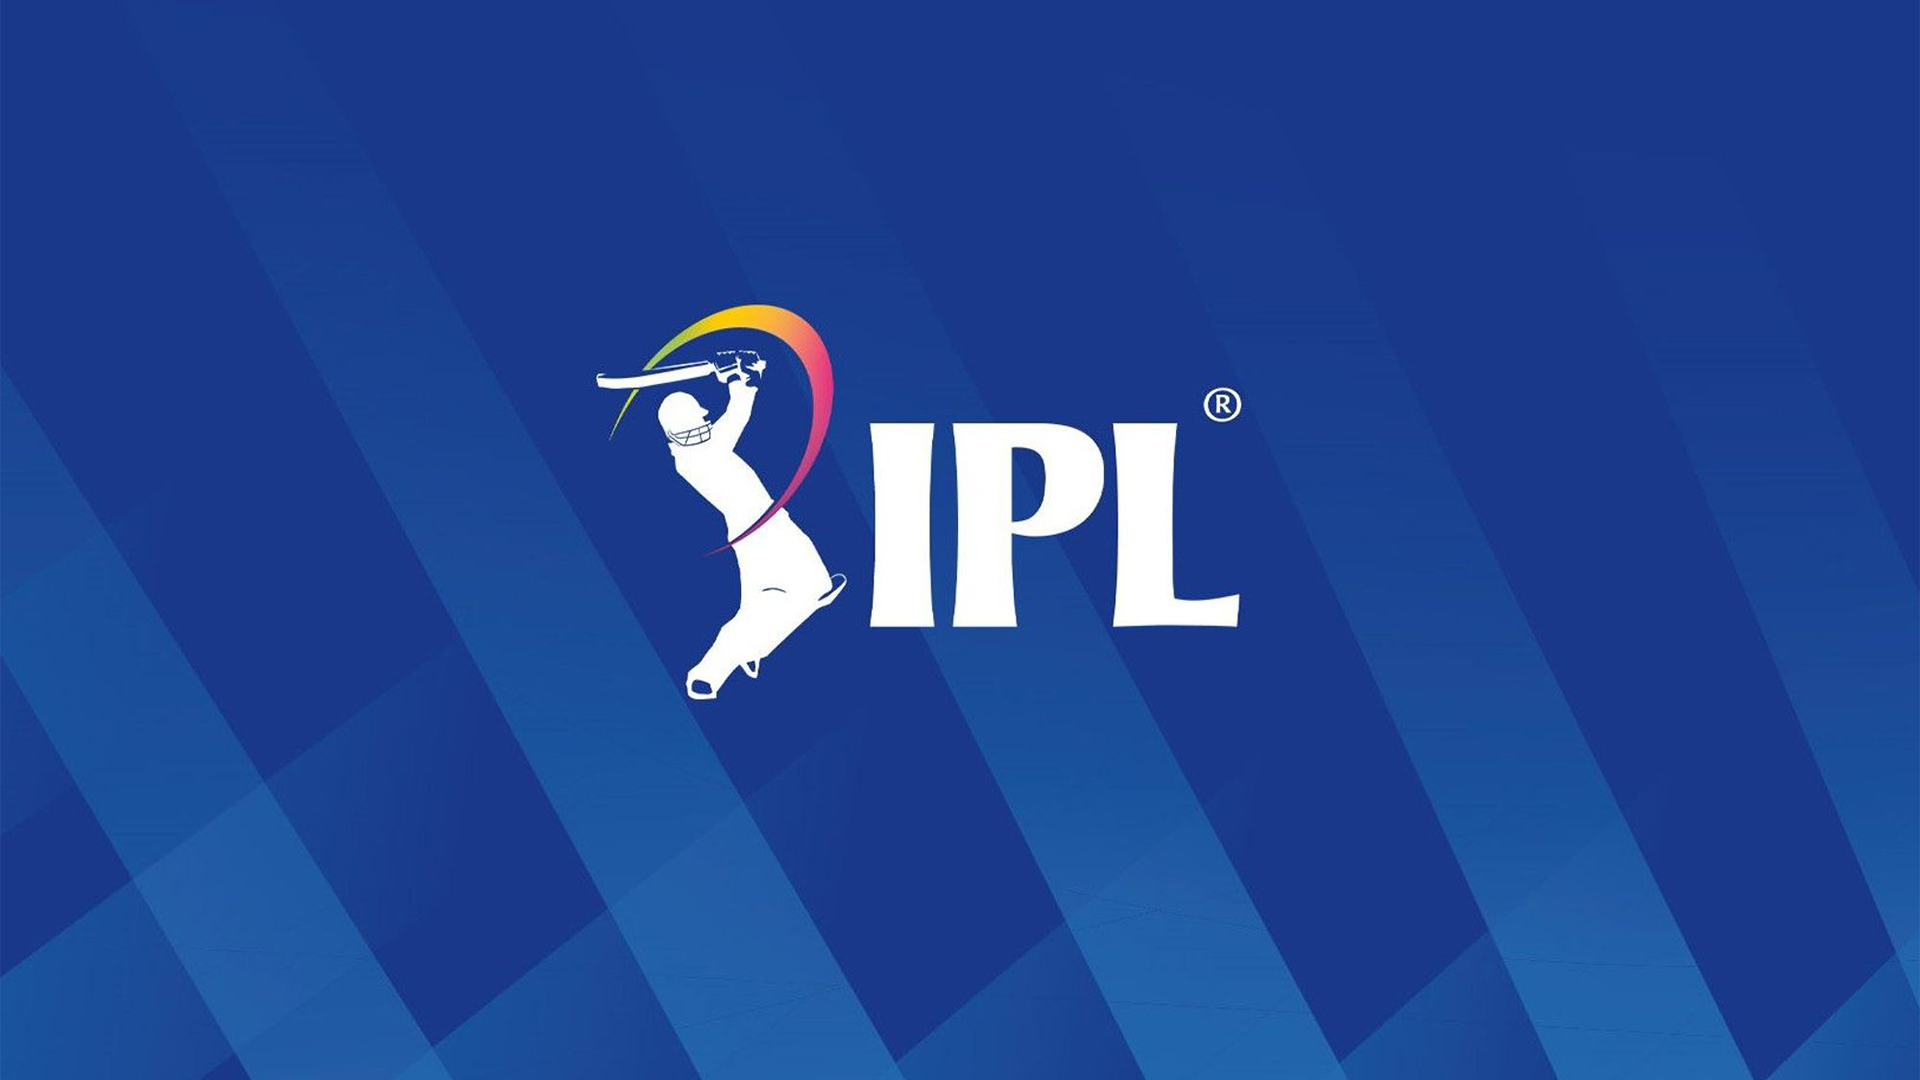 How to Watch IPL 2021 Matches Live on Your Smartphone, Smart TV, and Laptop